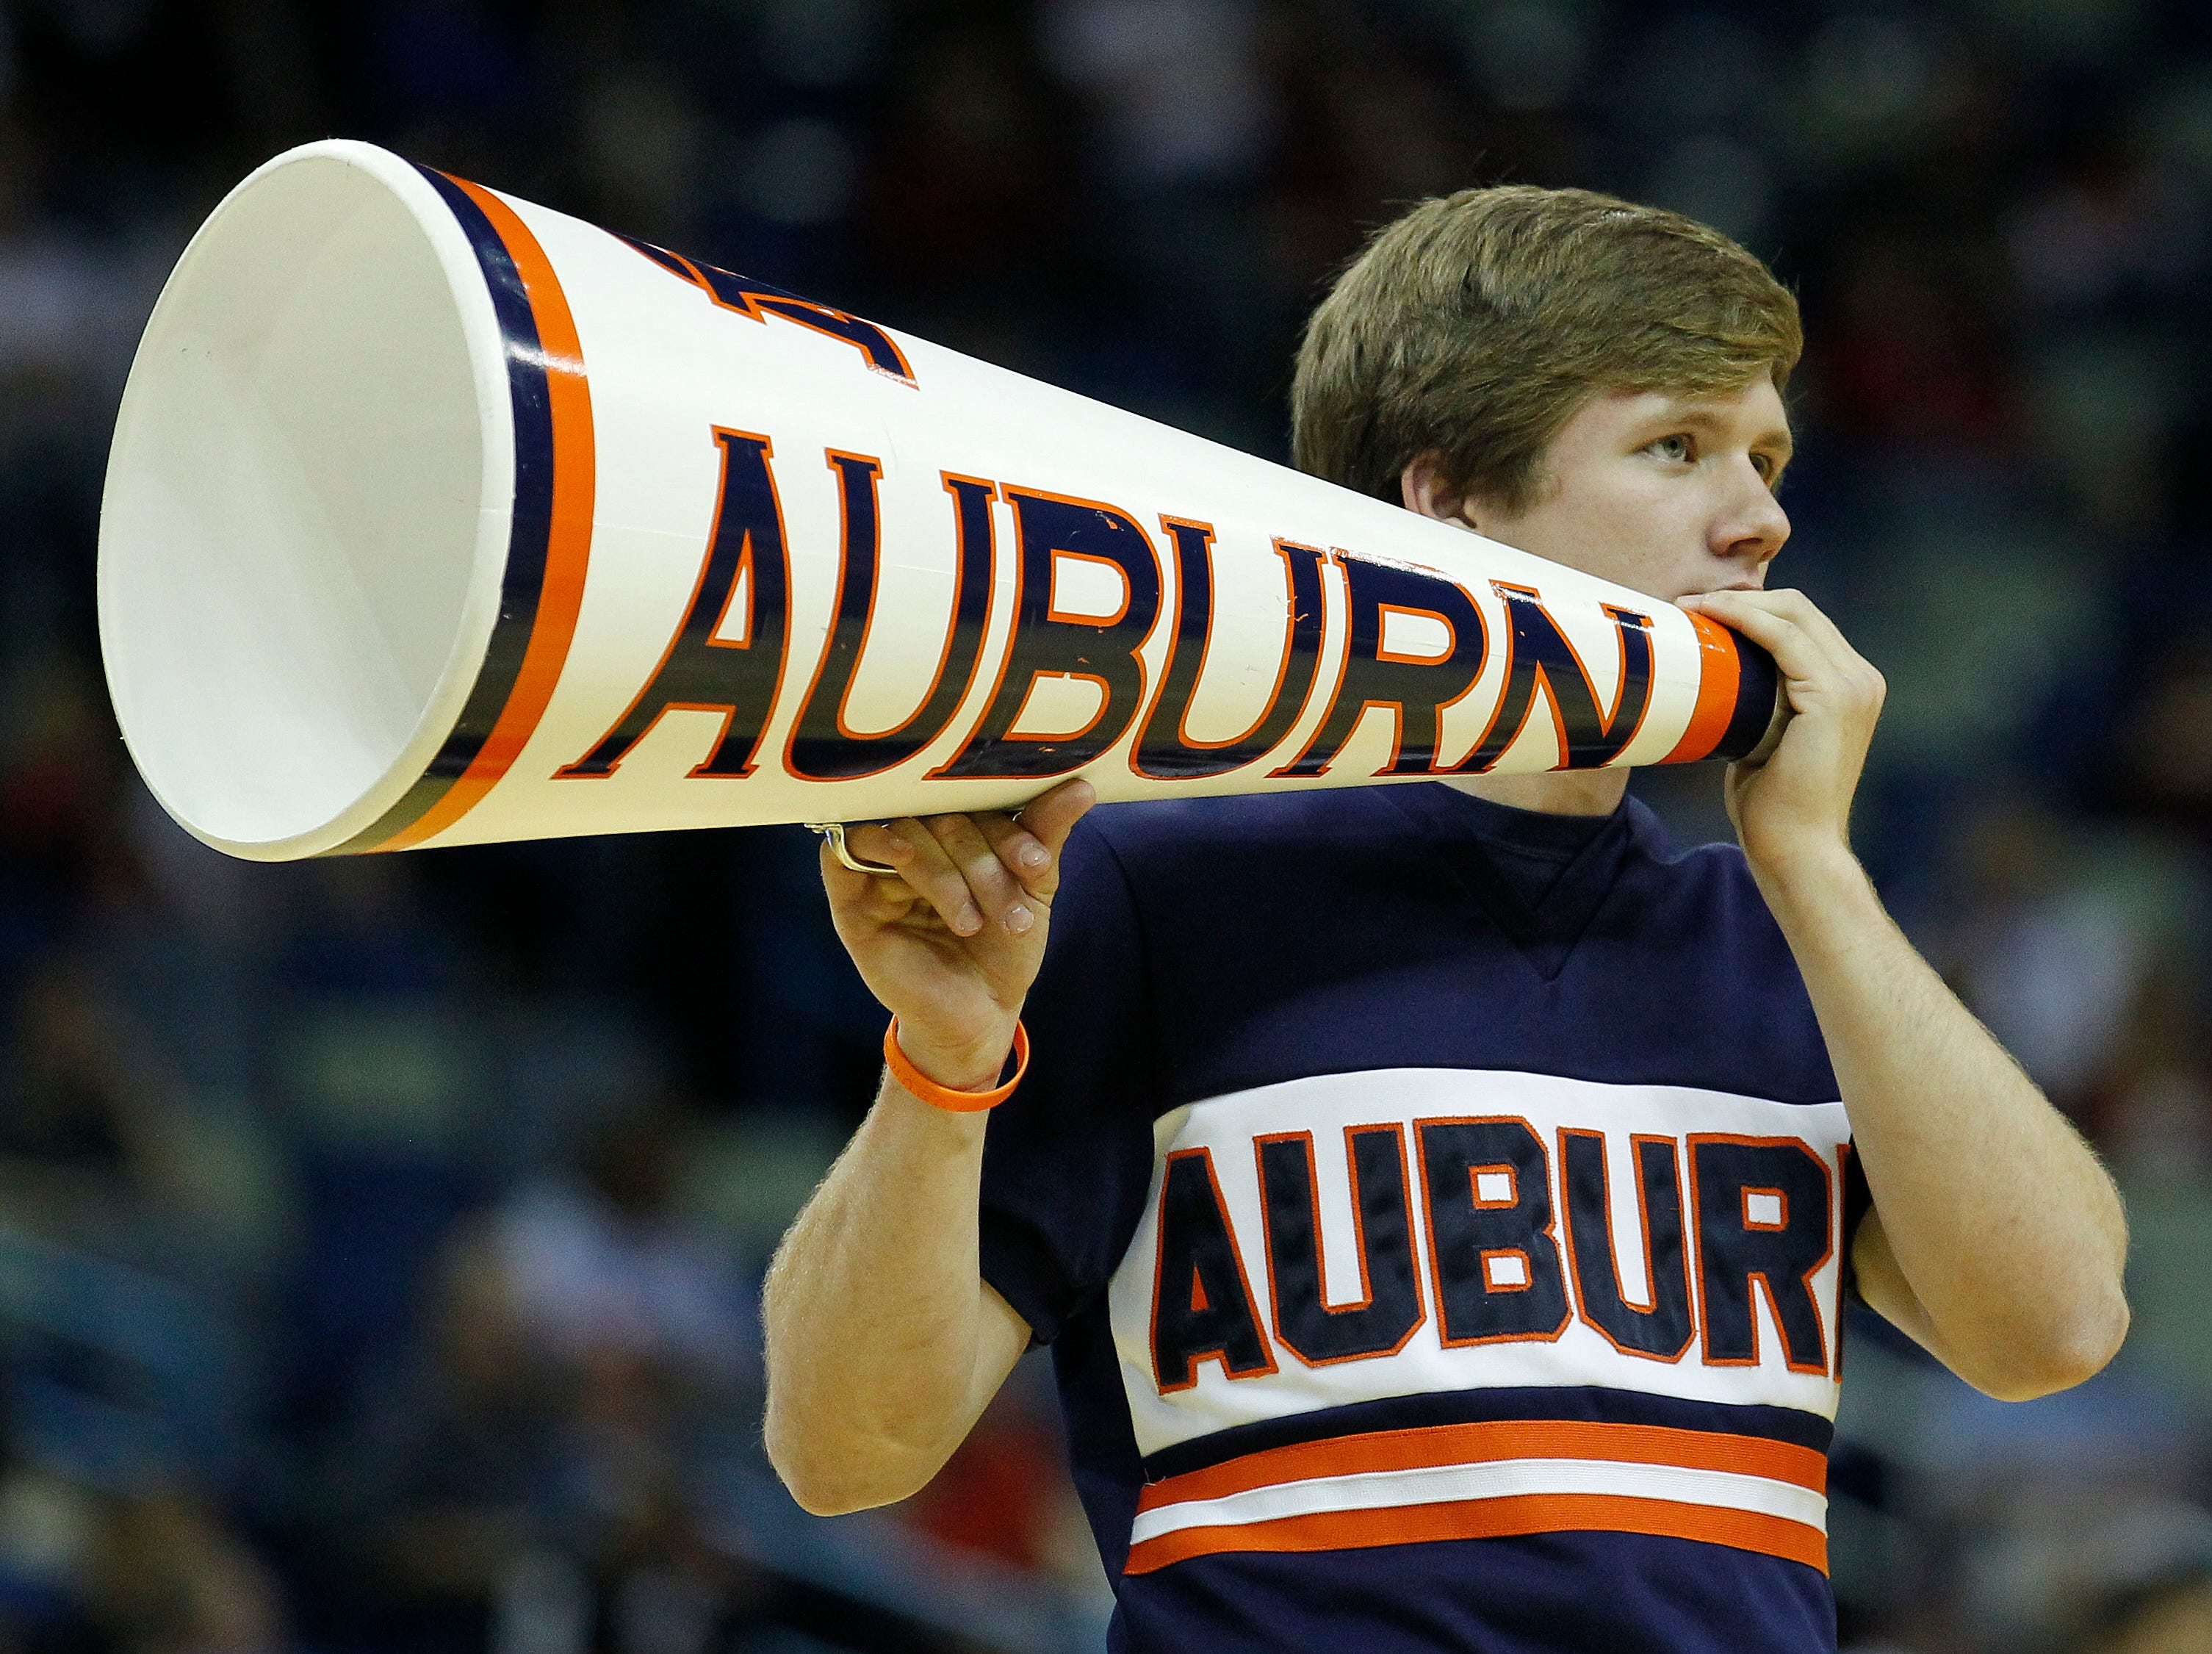 An Auburn cheerleader performs during the first half of an NCAA college basketball game in the first round of the 2012 Southeastern Conference tournament at the New Orleans Arena in New Orleans, Thursday, March 8, 2012. (AP Photo/Bill Haber)